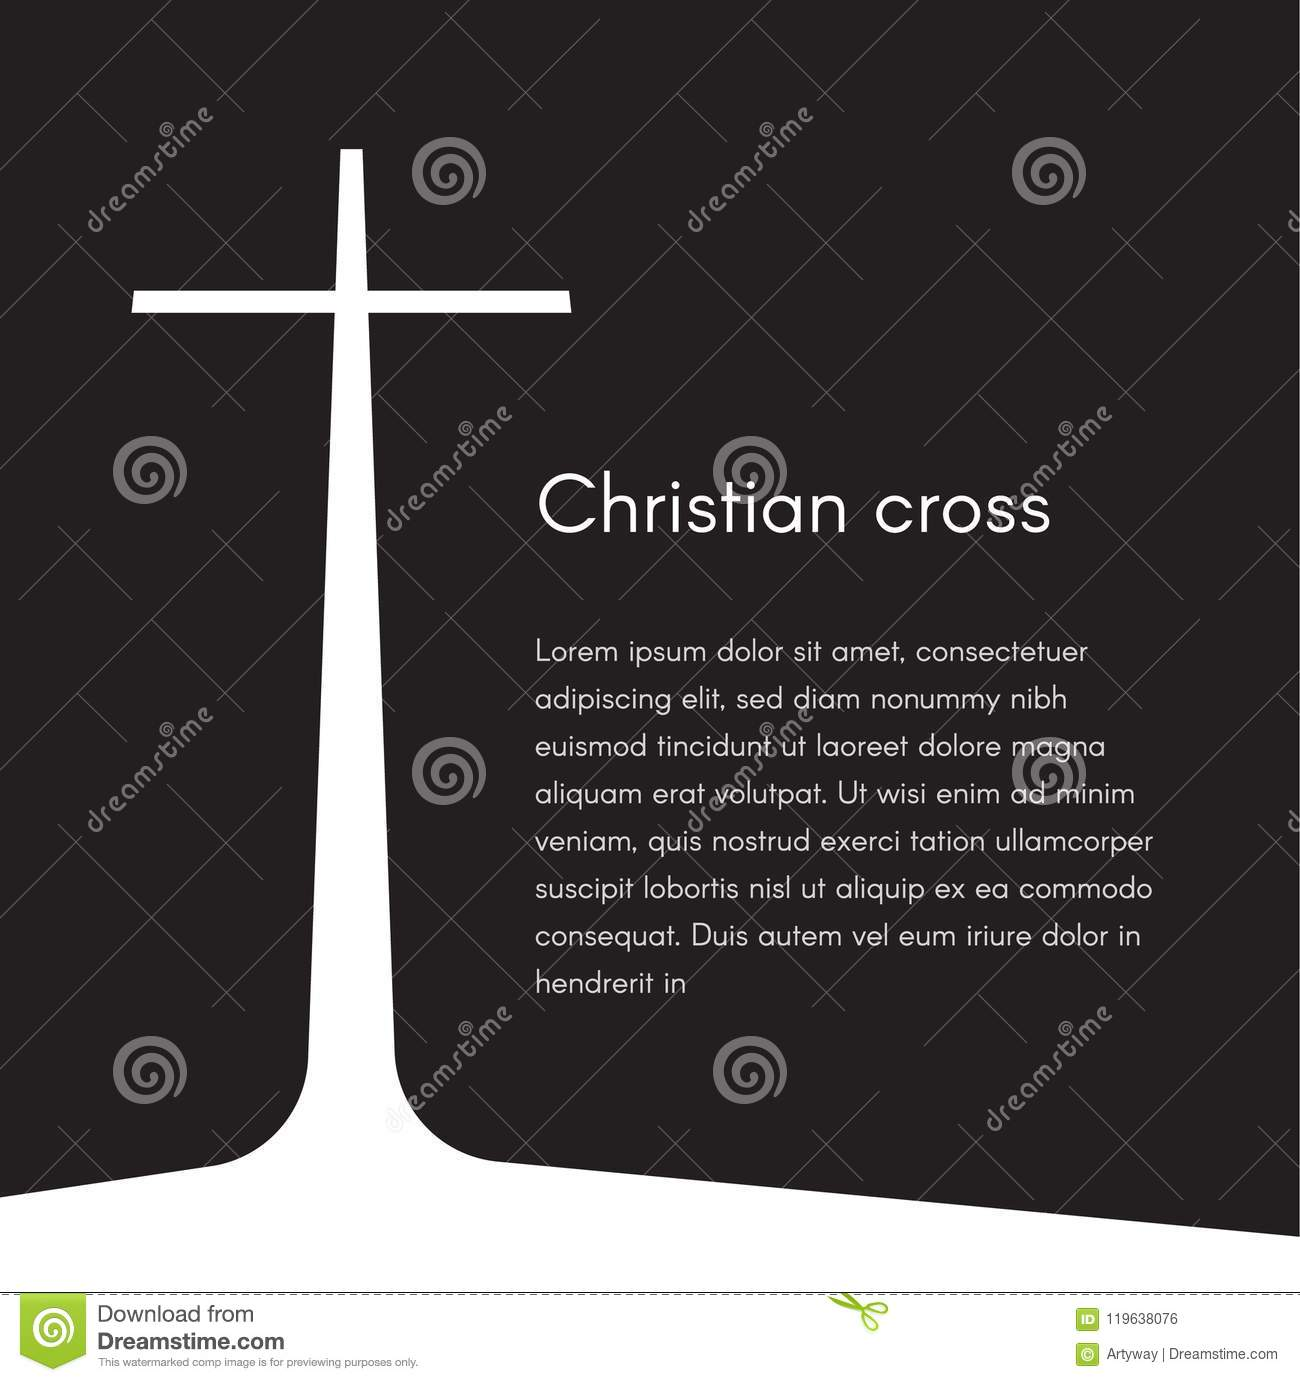 Christian cross silhouette. Religion symbol. White cross on black background with text, vector illustration template for